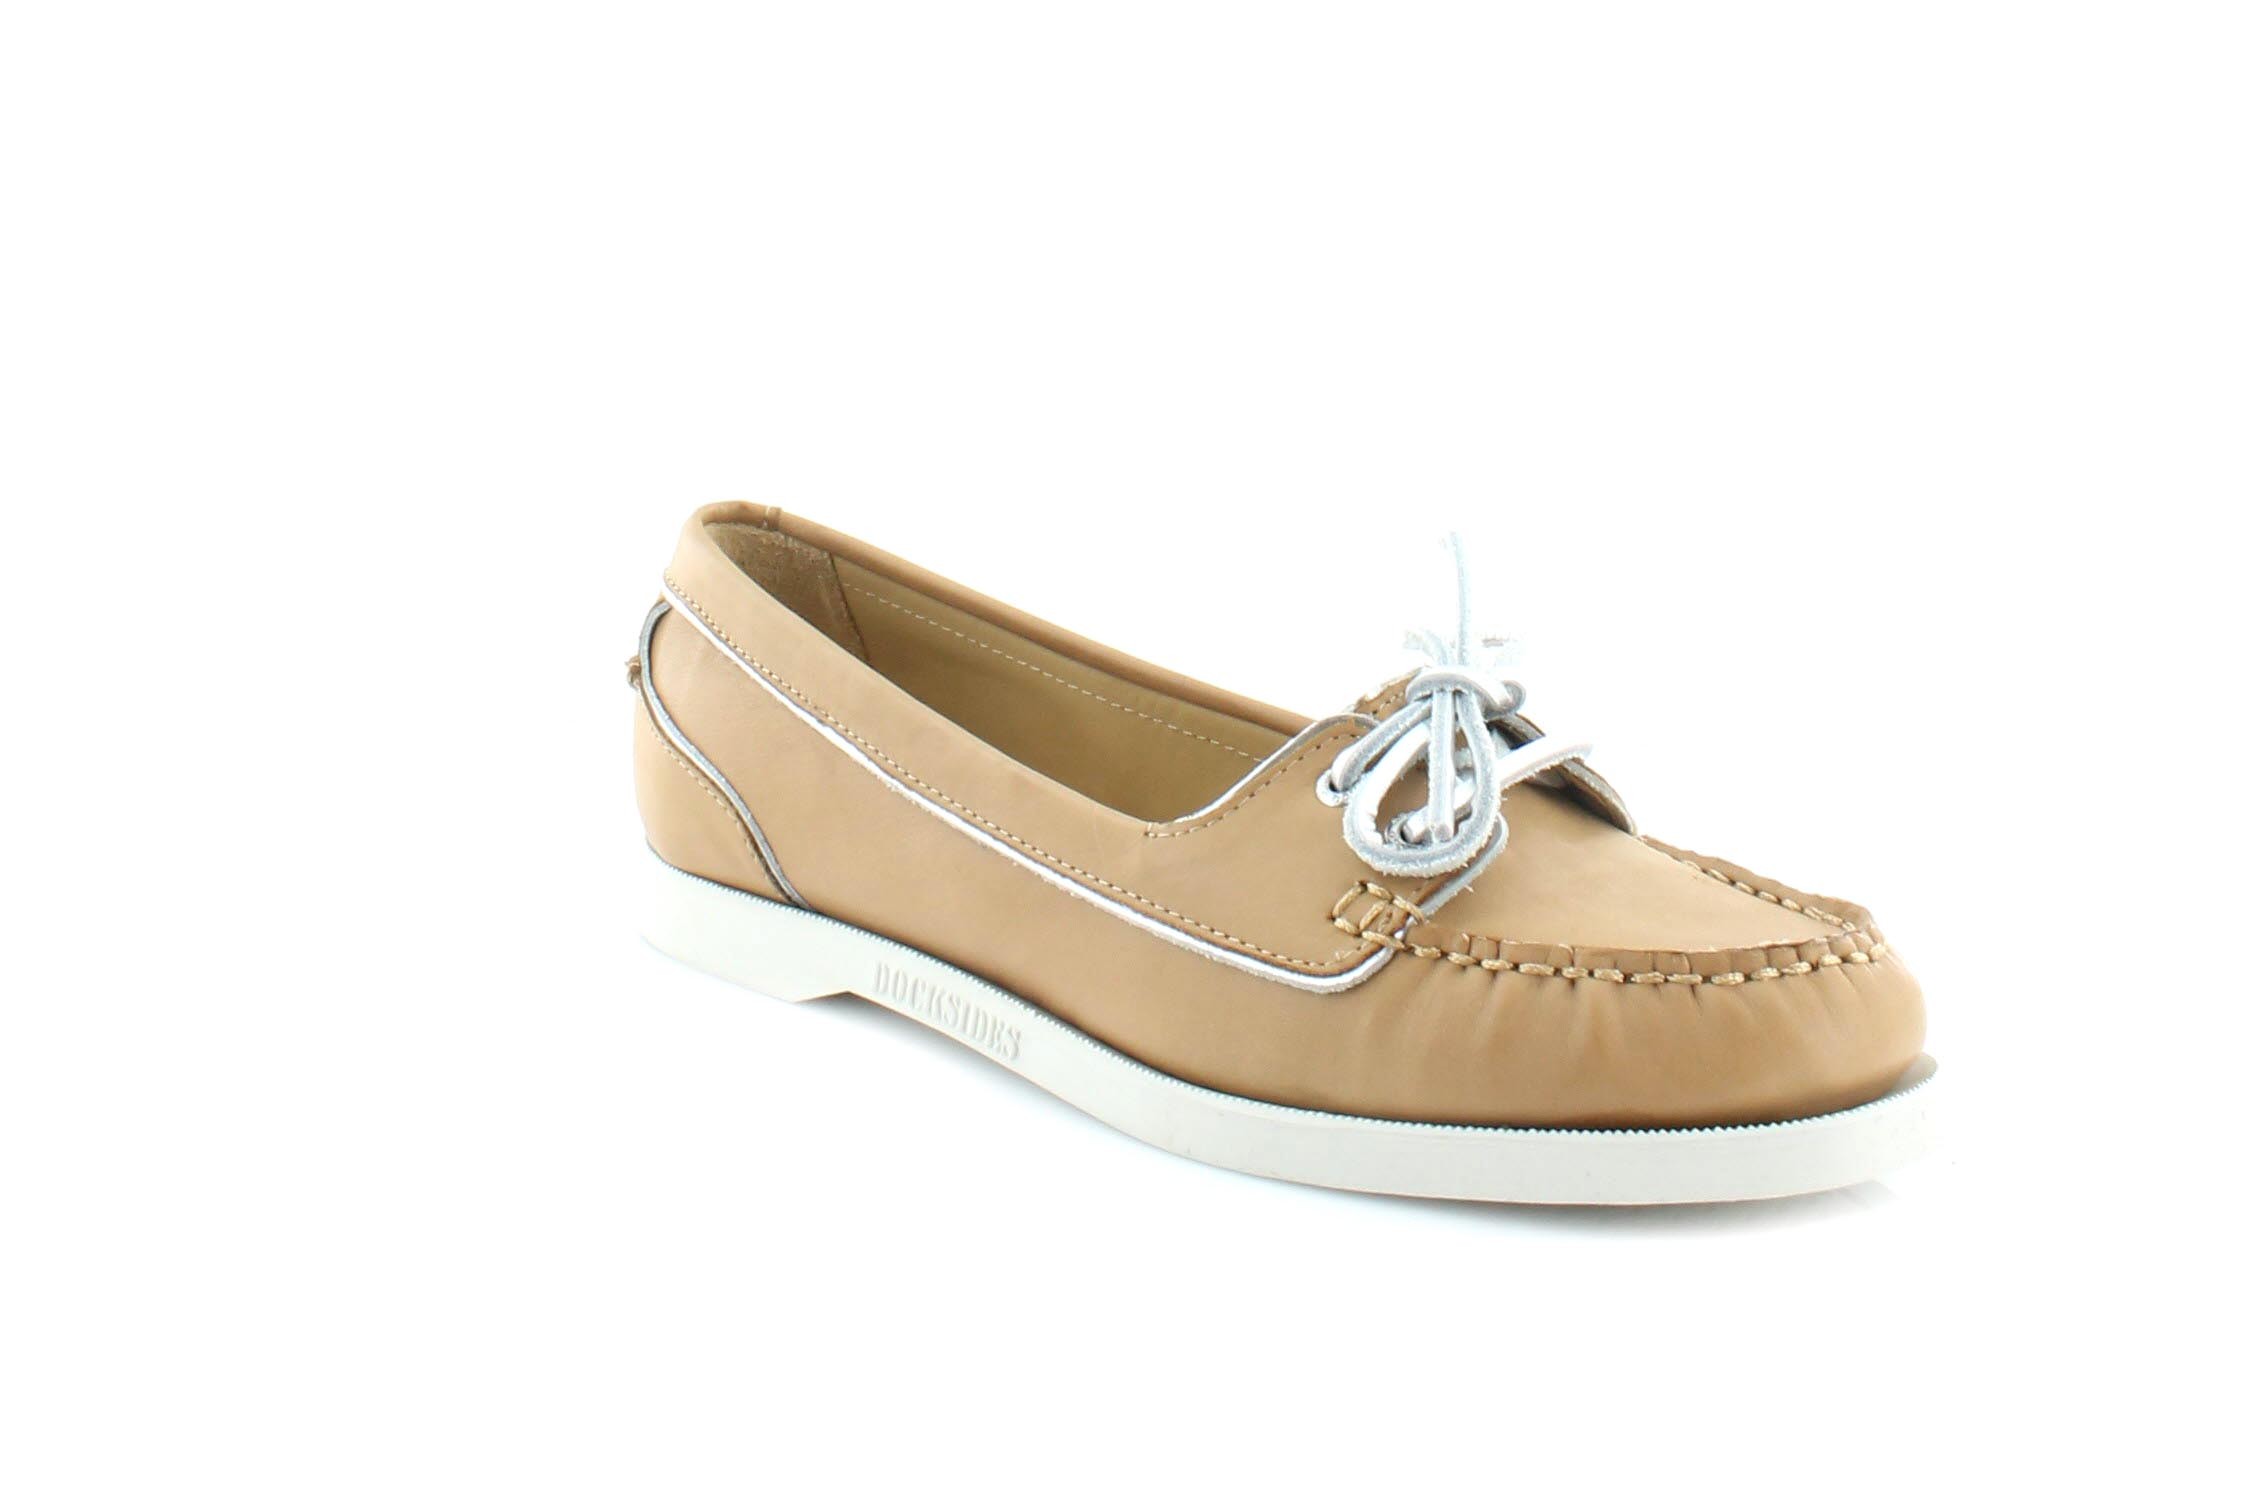 Sebago Docksides Women's Flats & Oxfords by